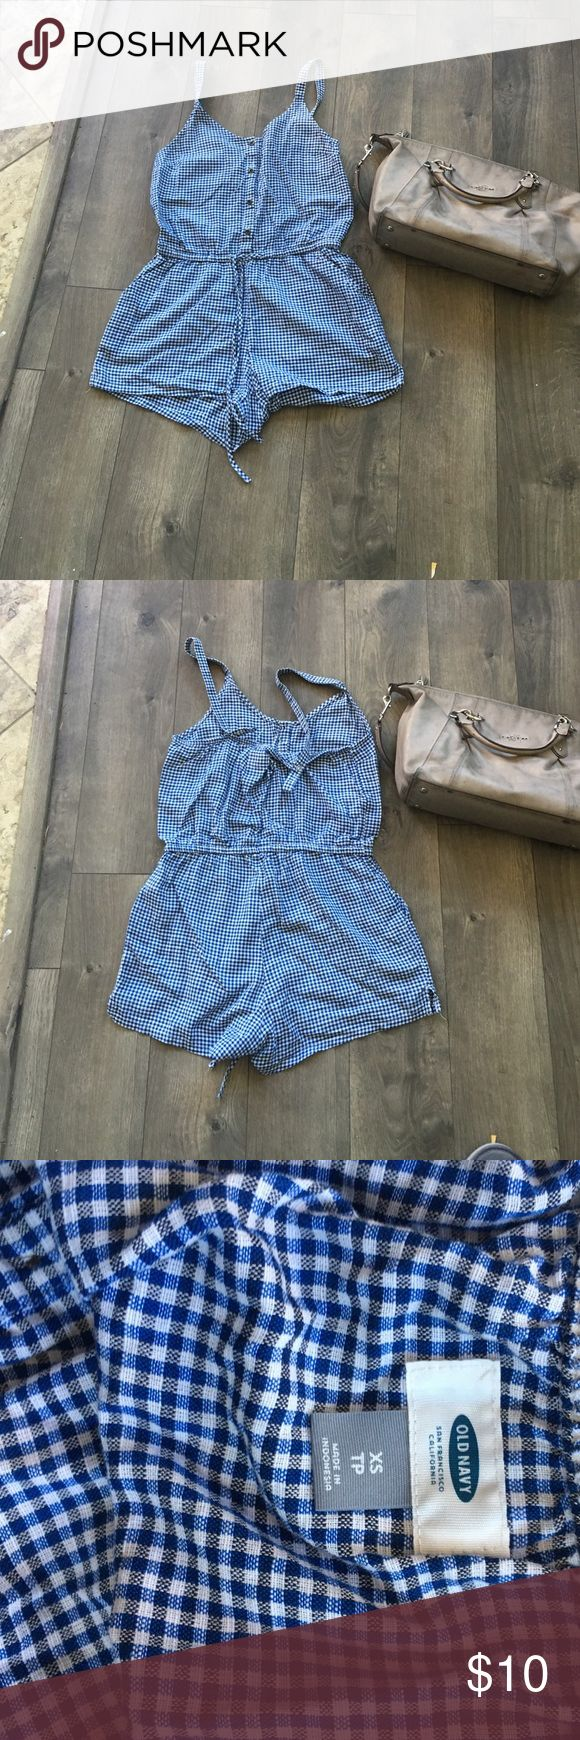 Gingham romper Blue and white gingham romper. Worn twice. A little small in the bust for me. Otherwise so so cute. Hello spring picnic date outfit! Size Old Navy XS. Old Navy Other